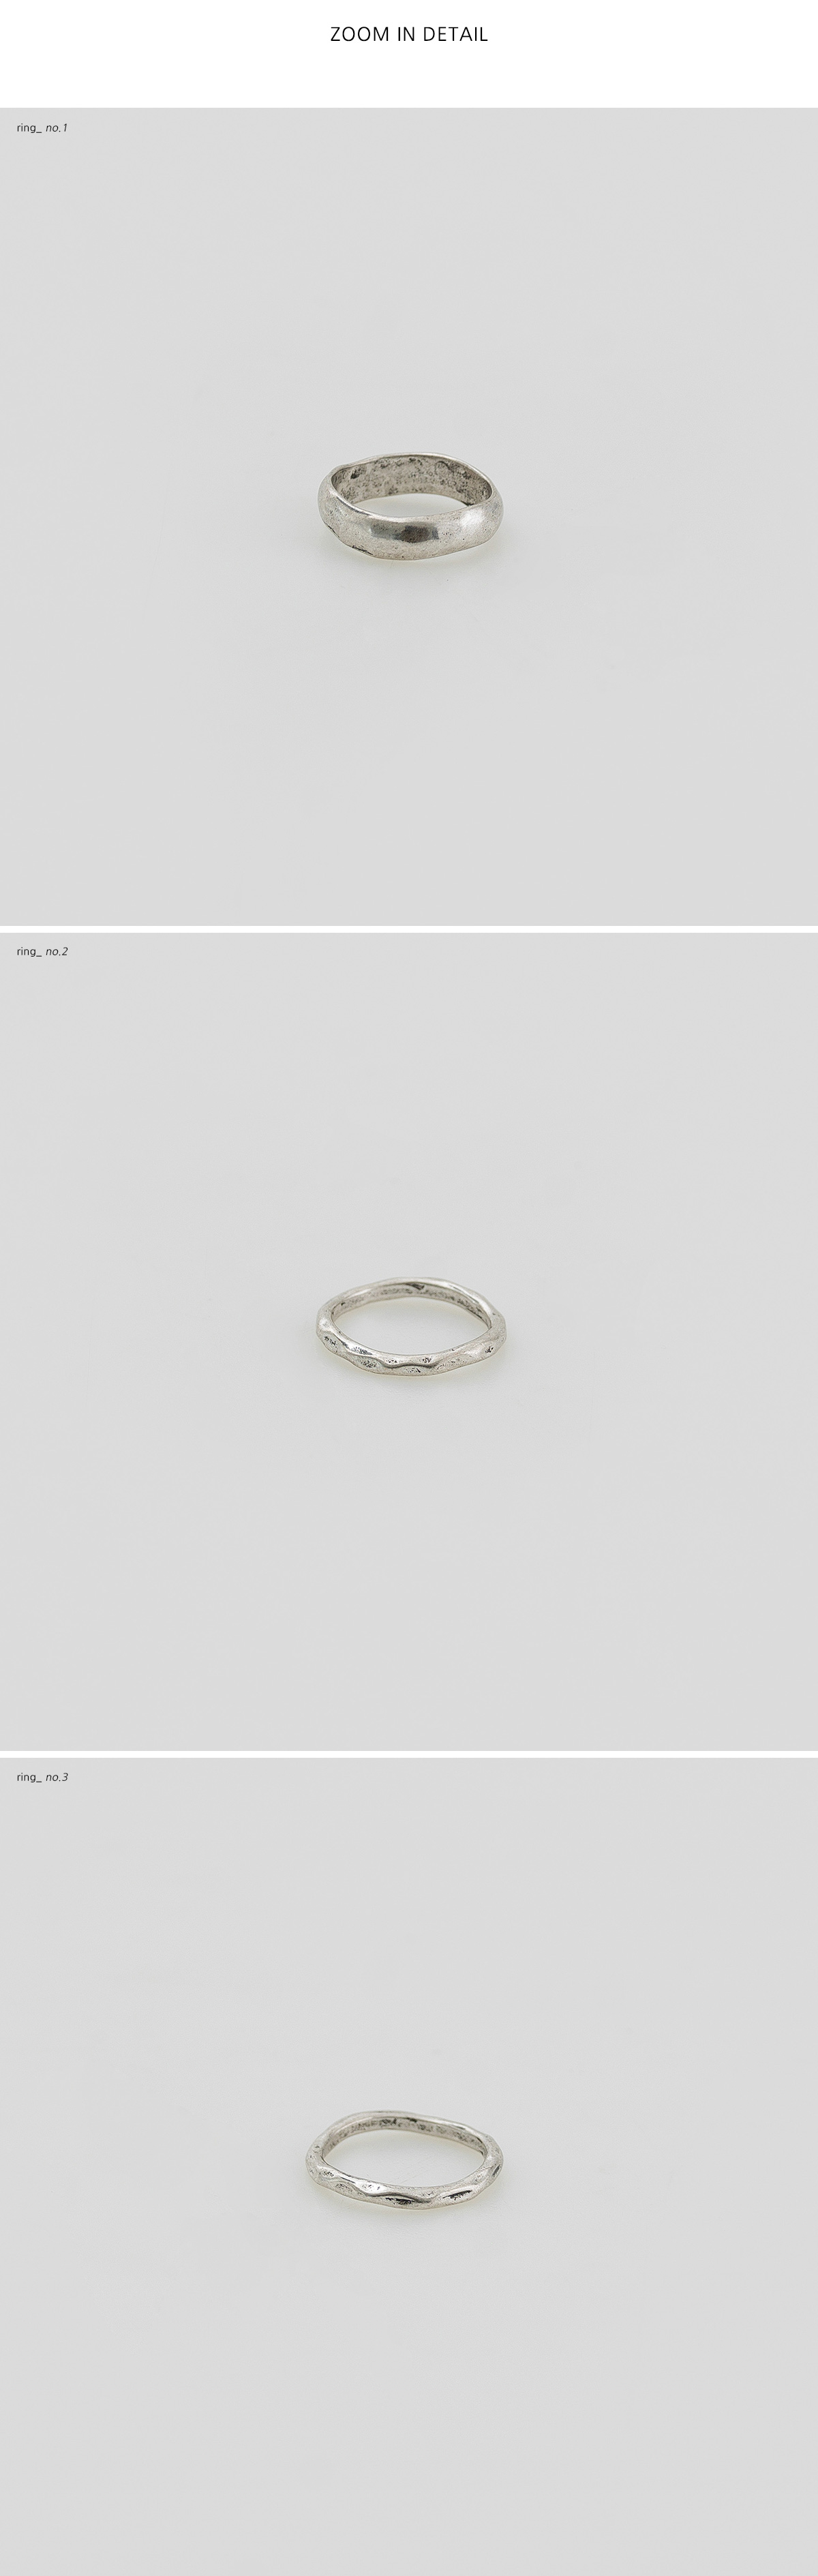 uneven bold ring set